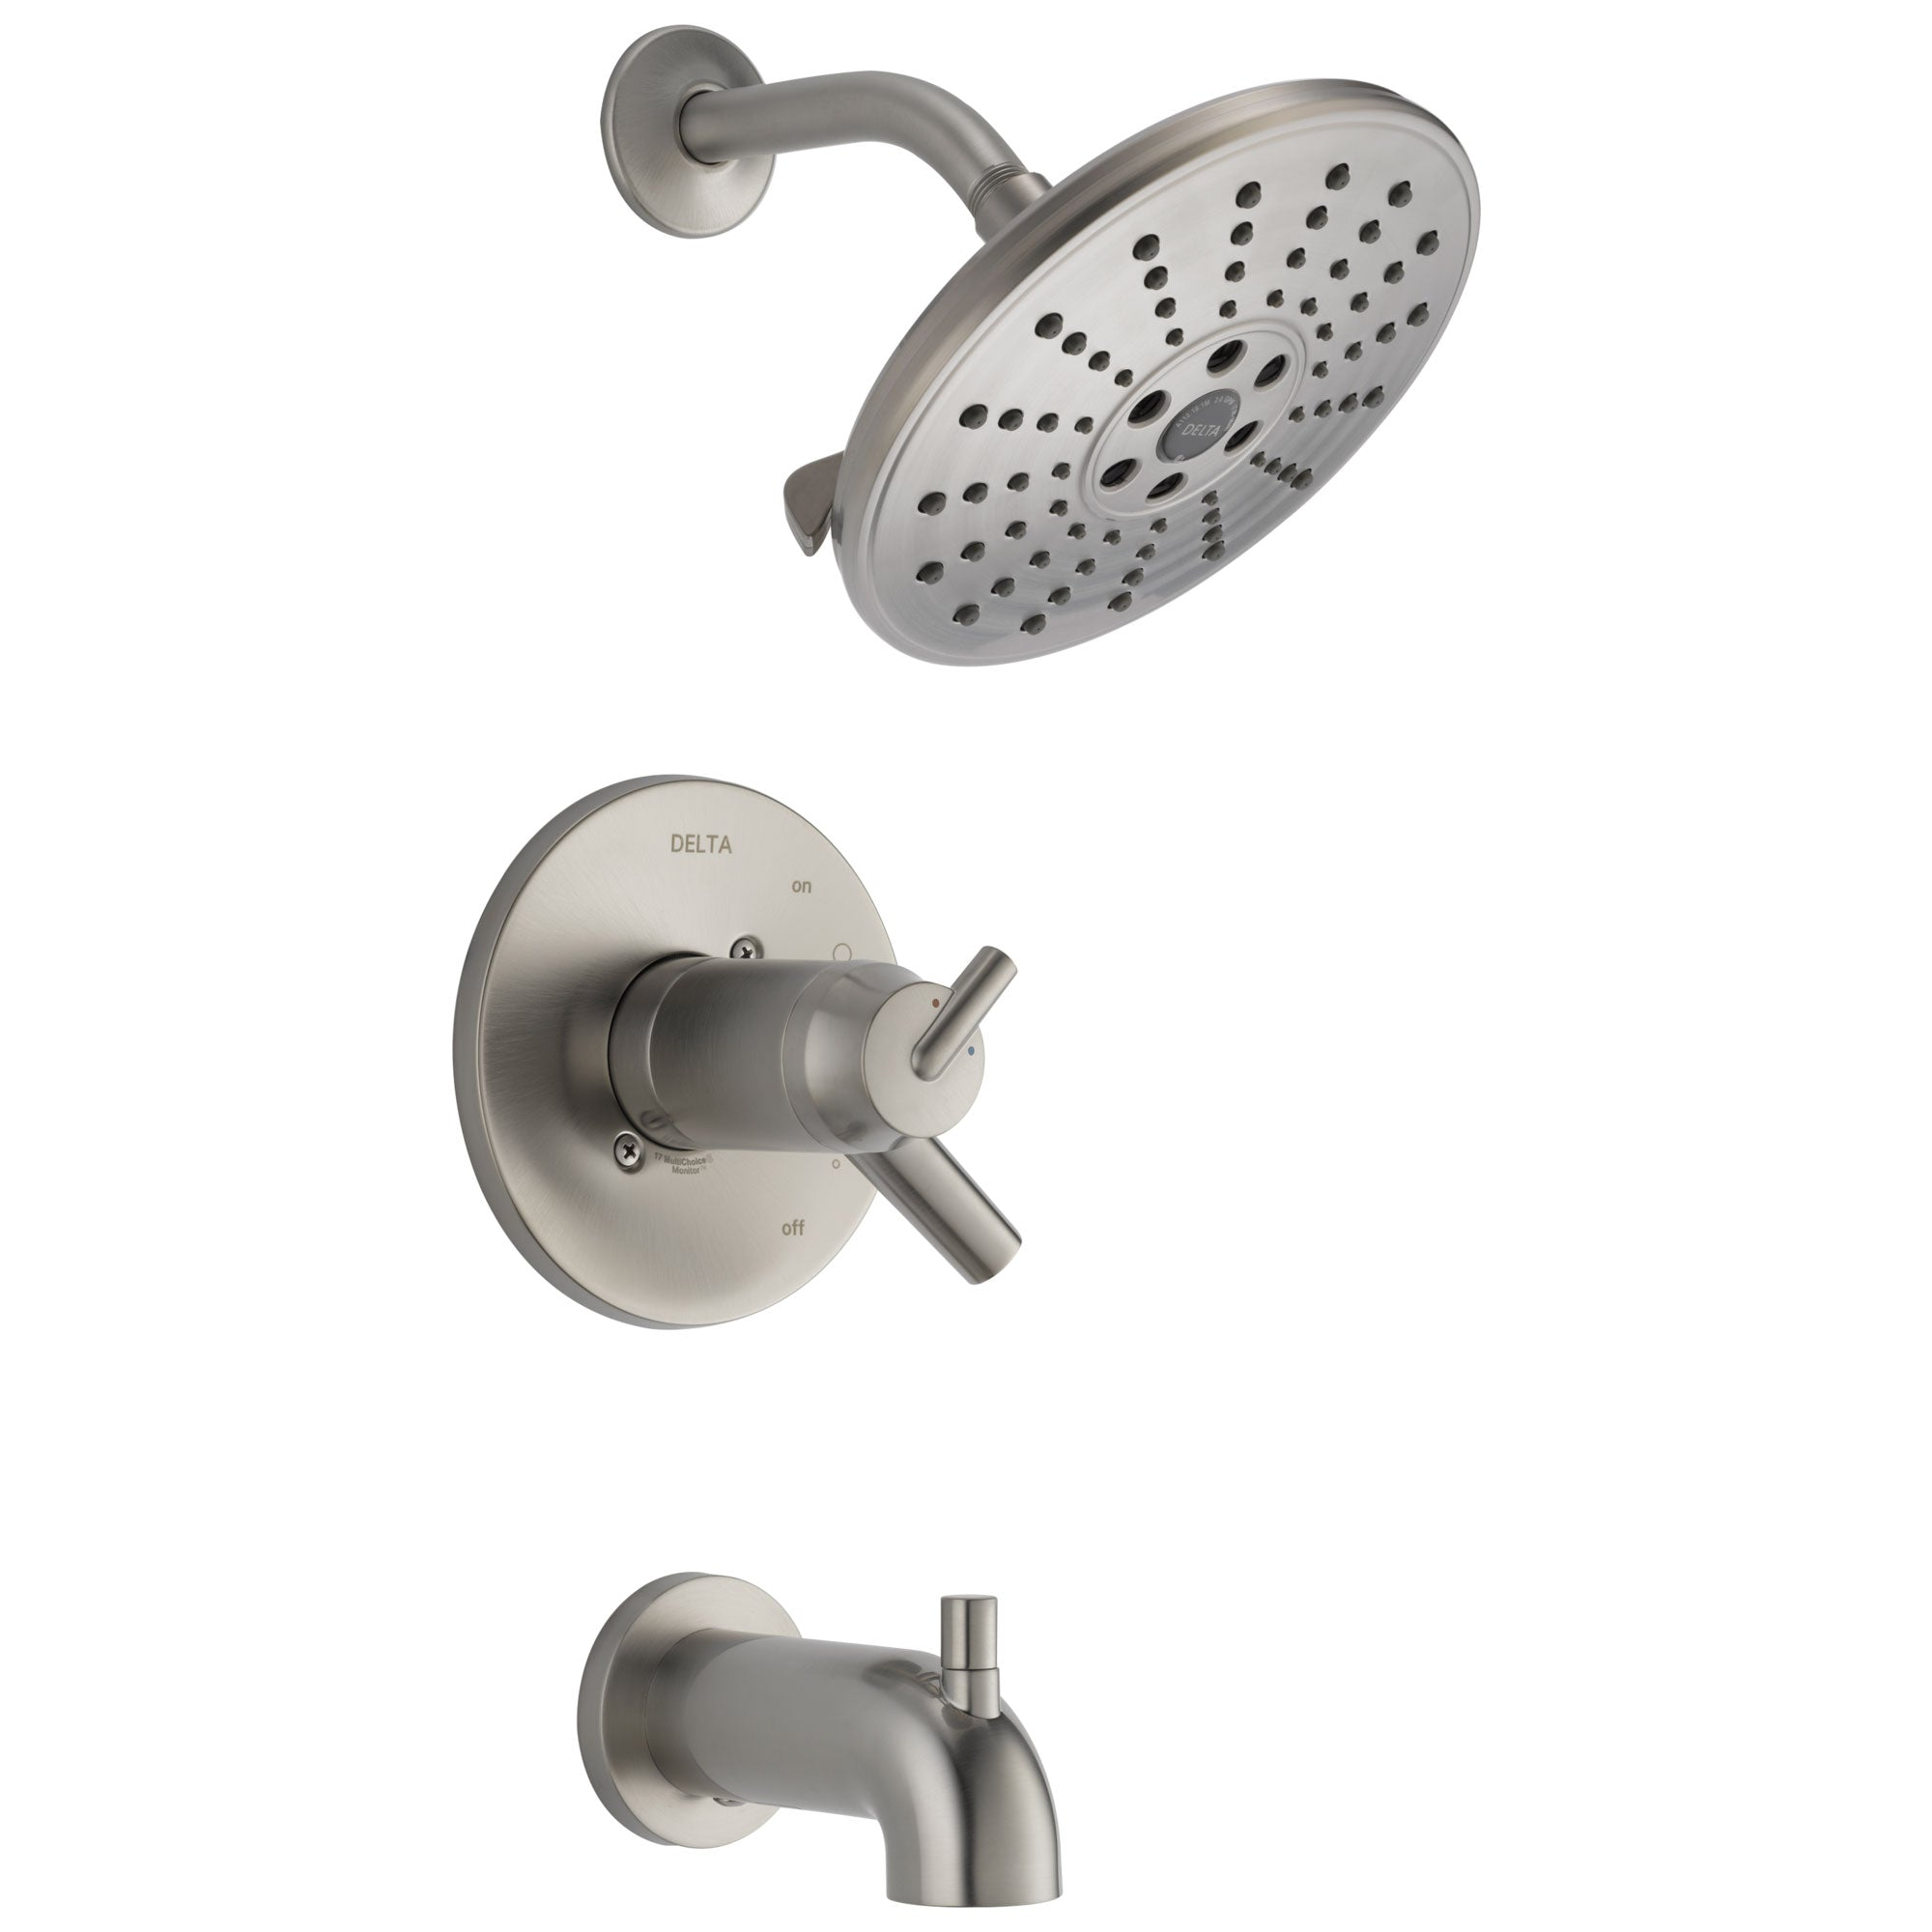 Delta Trinsic Collection Stainless Steel Finish TempAssure 17T Watersense Thermostatic Tub and Shower Combo Faucet Includes Valve without Stops D2229V